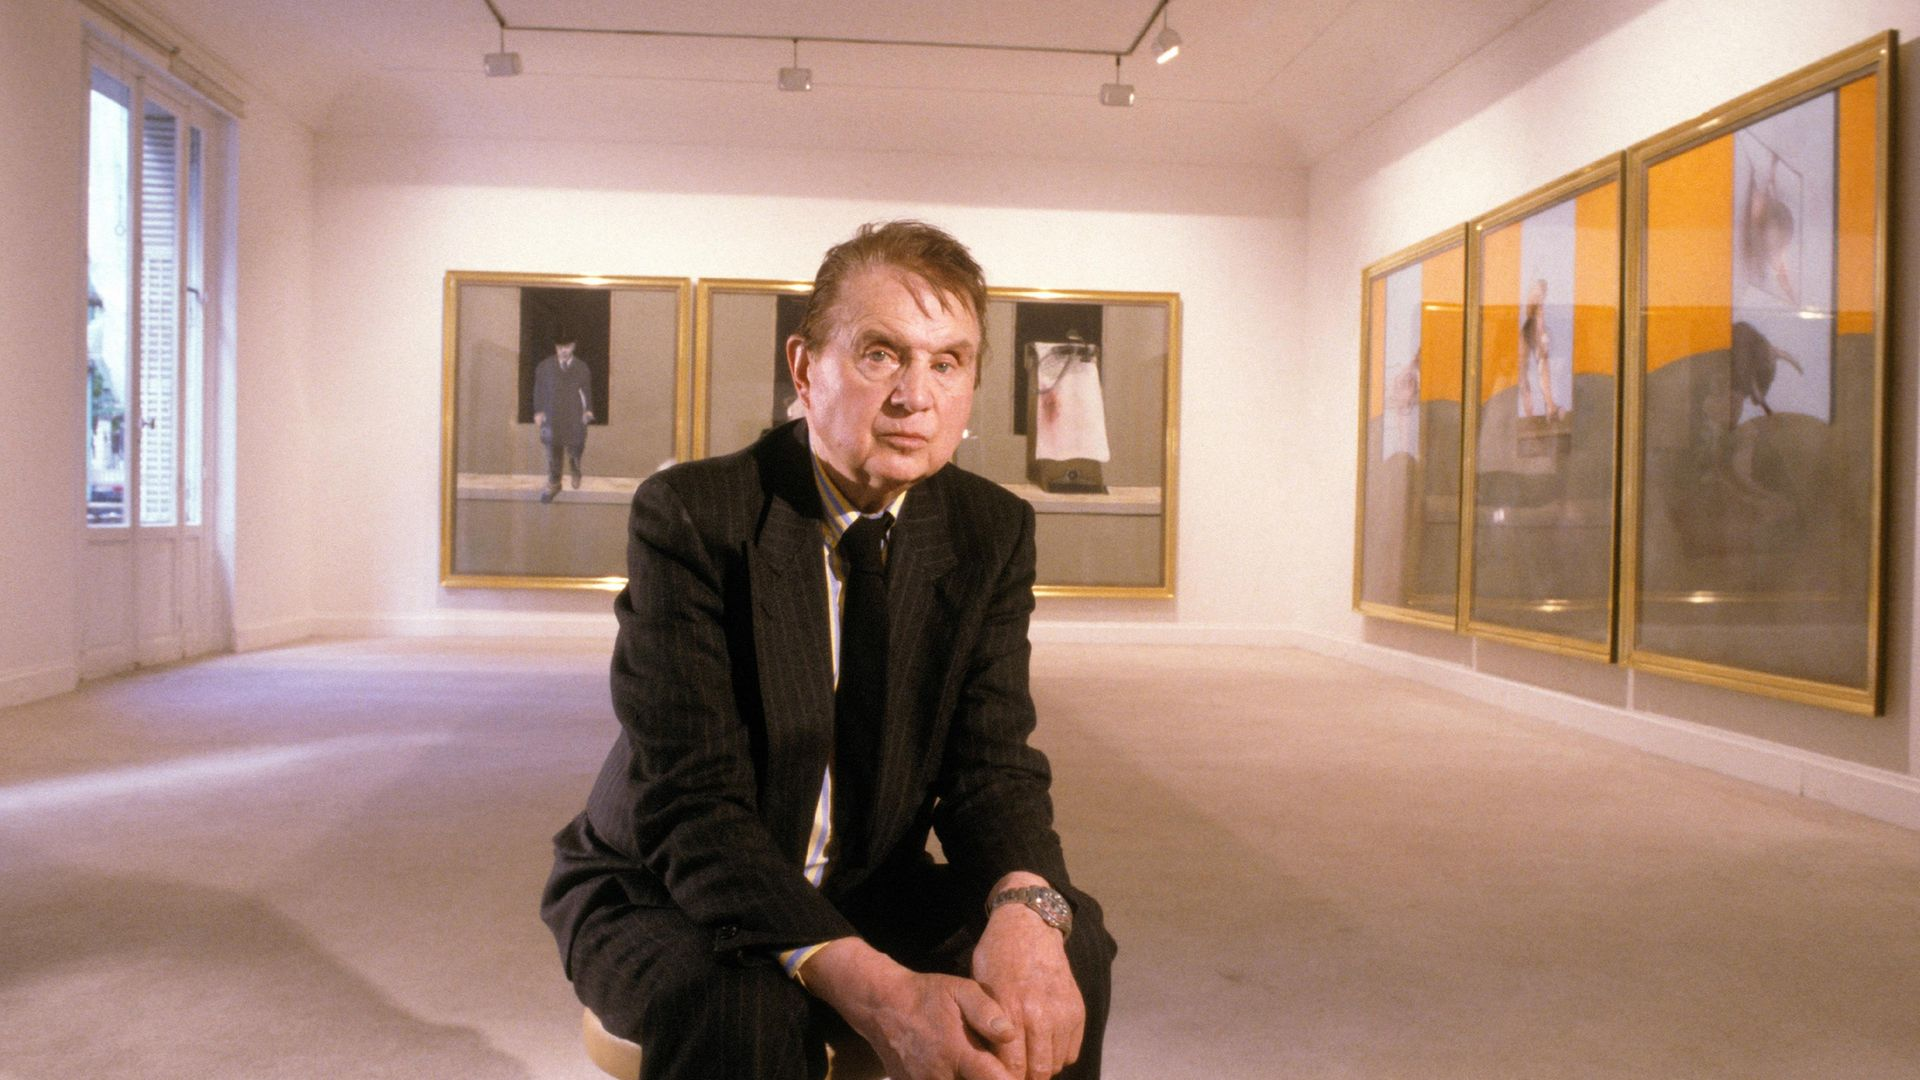 Painter Francis Bacon posing in front of paintings in a Paris gallery in 1987 - Credit: Gamma-Rapho via Getty Images